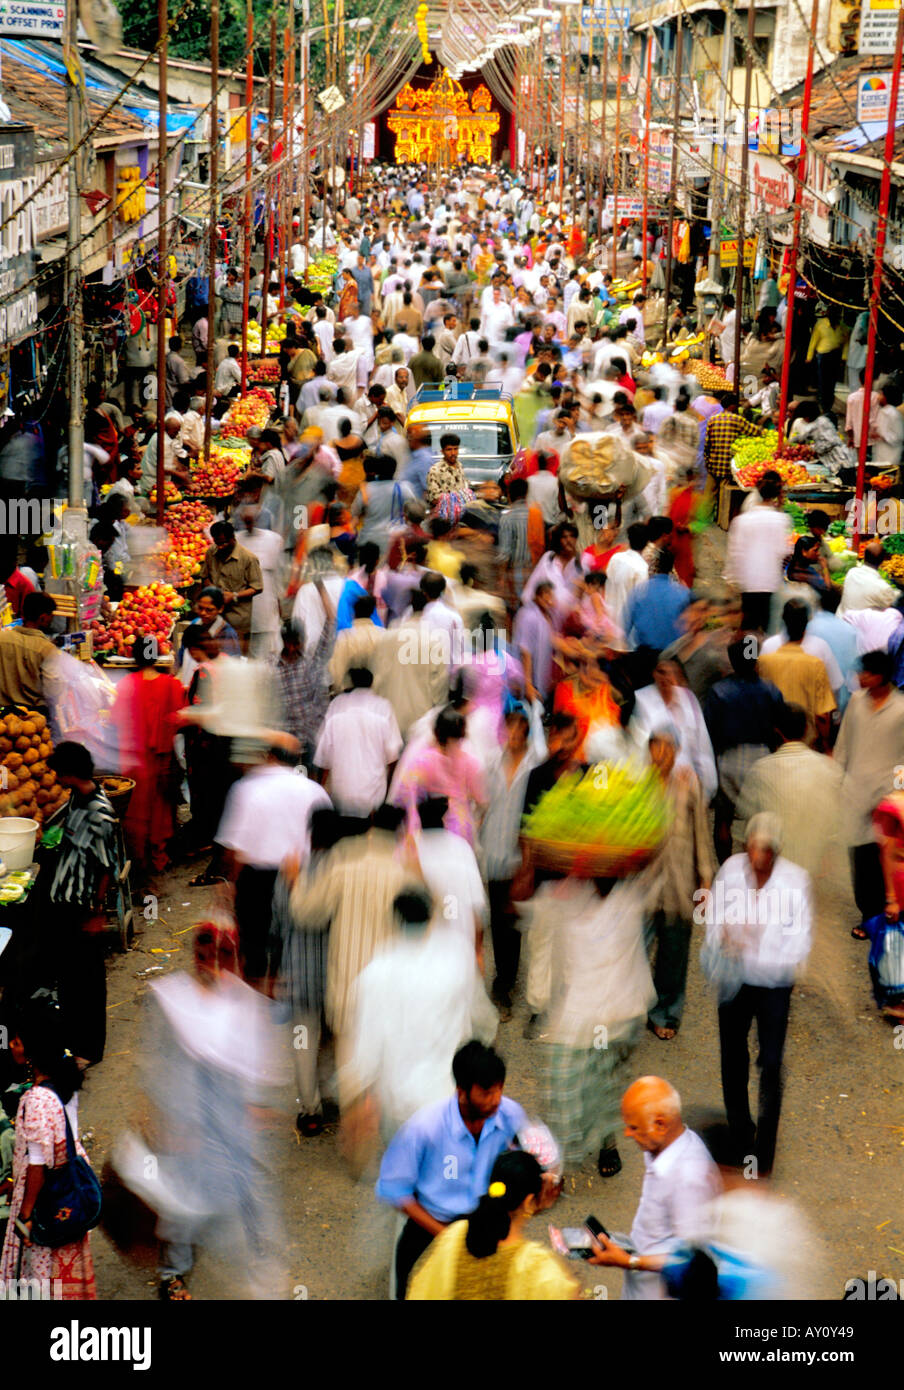 The unimaginable buzz of Dadar West Street Market Mumbai seething with crowds of buyers and sellers. India Asia Stock Photo